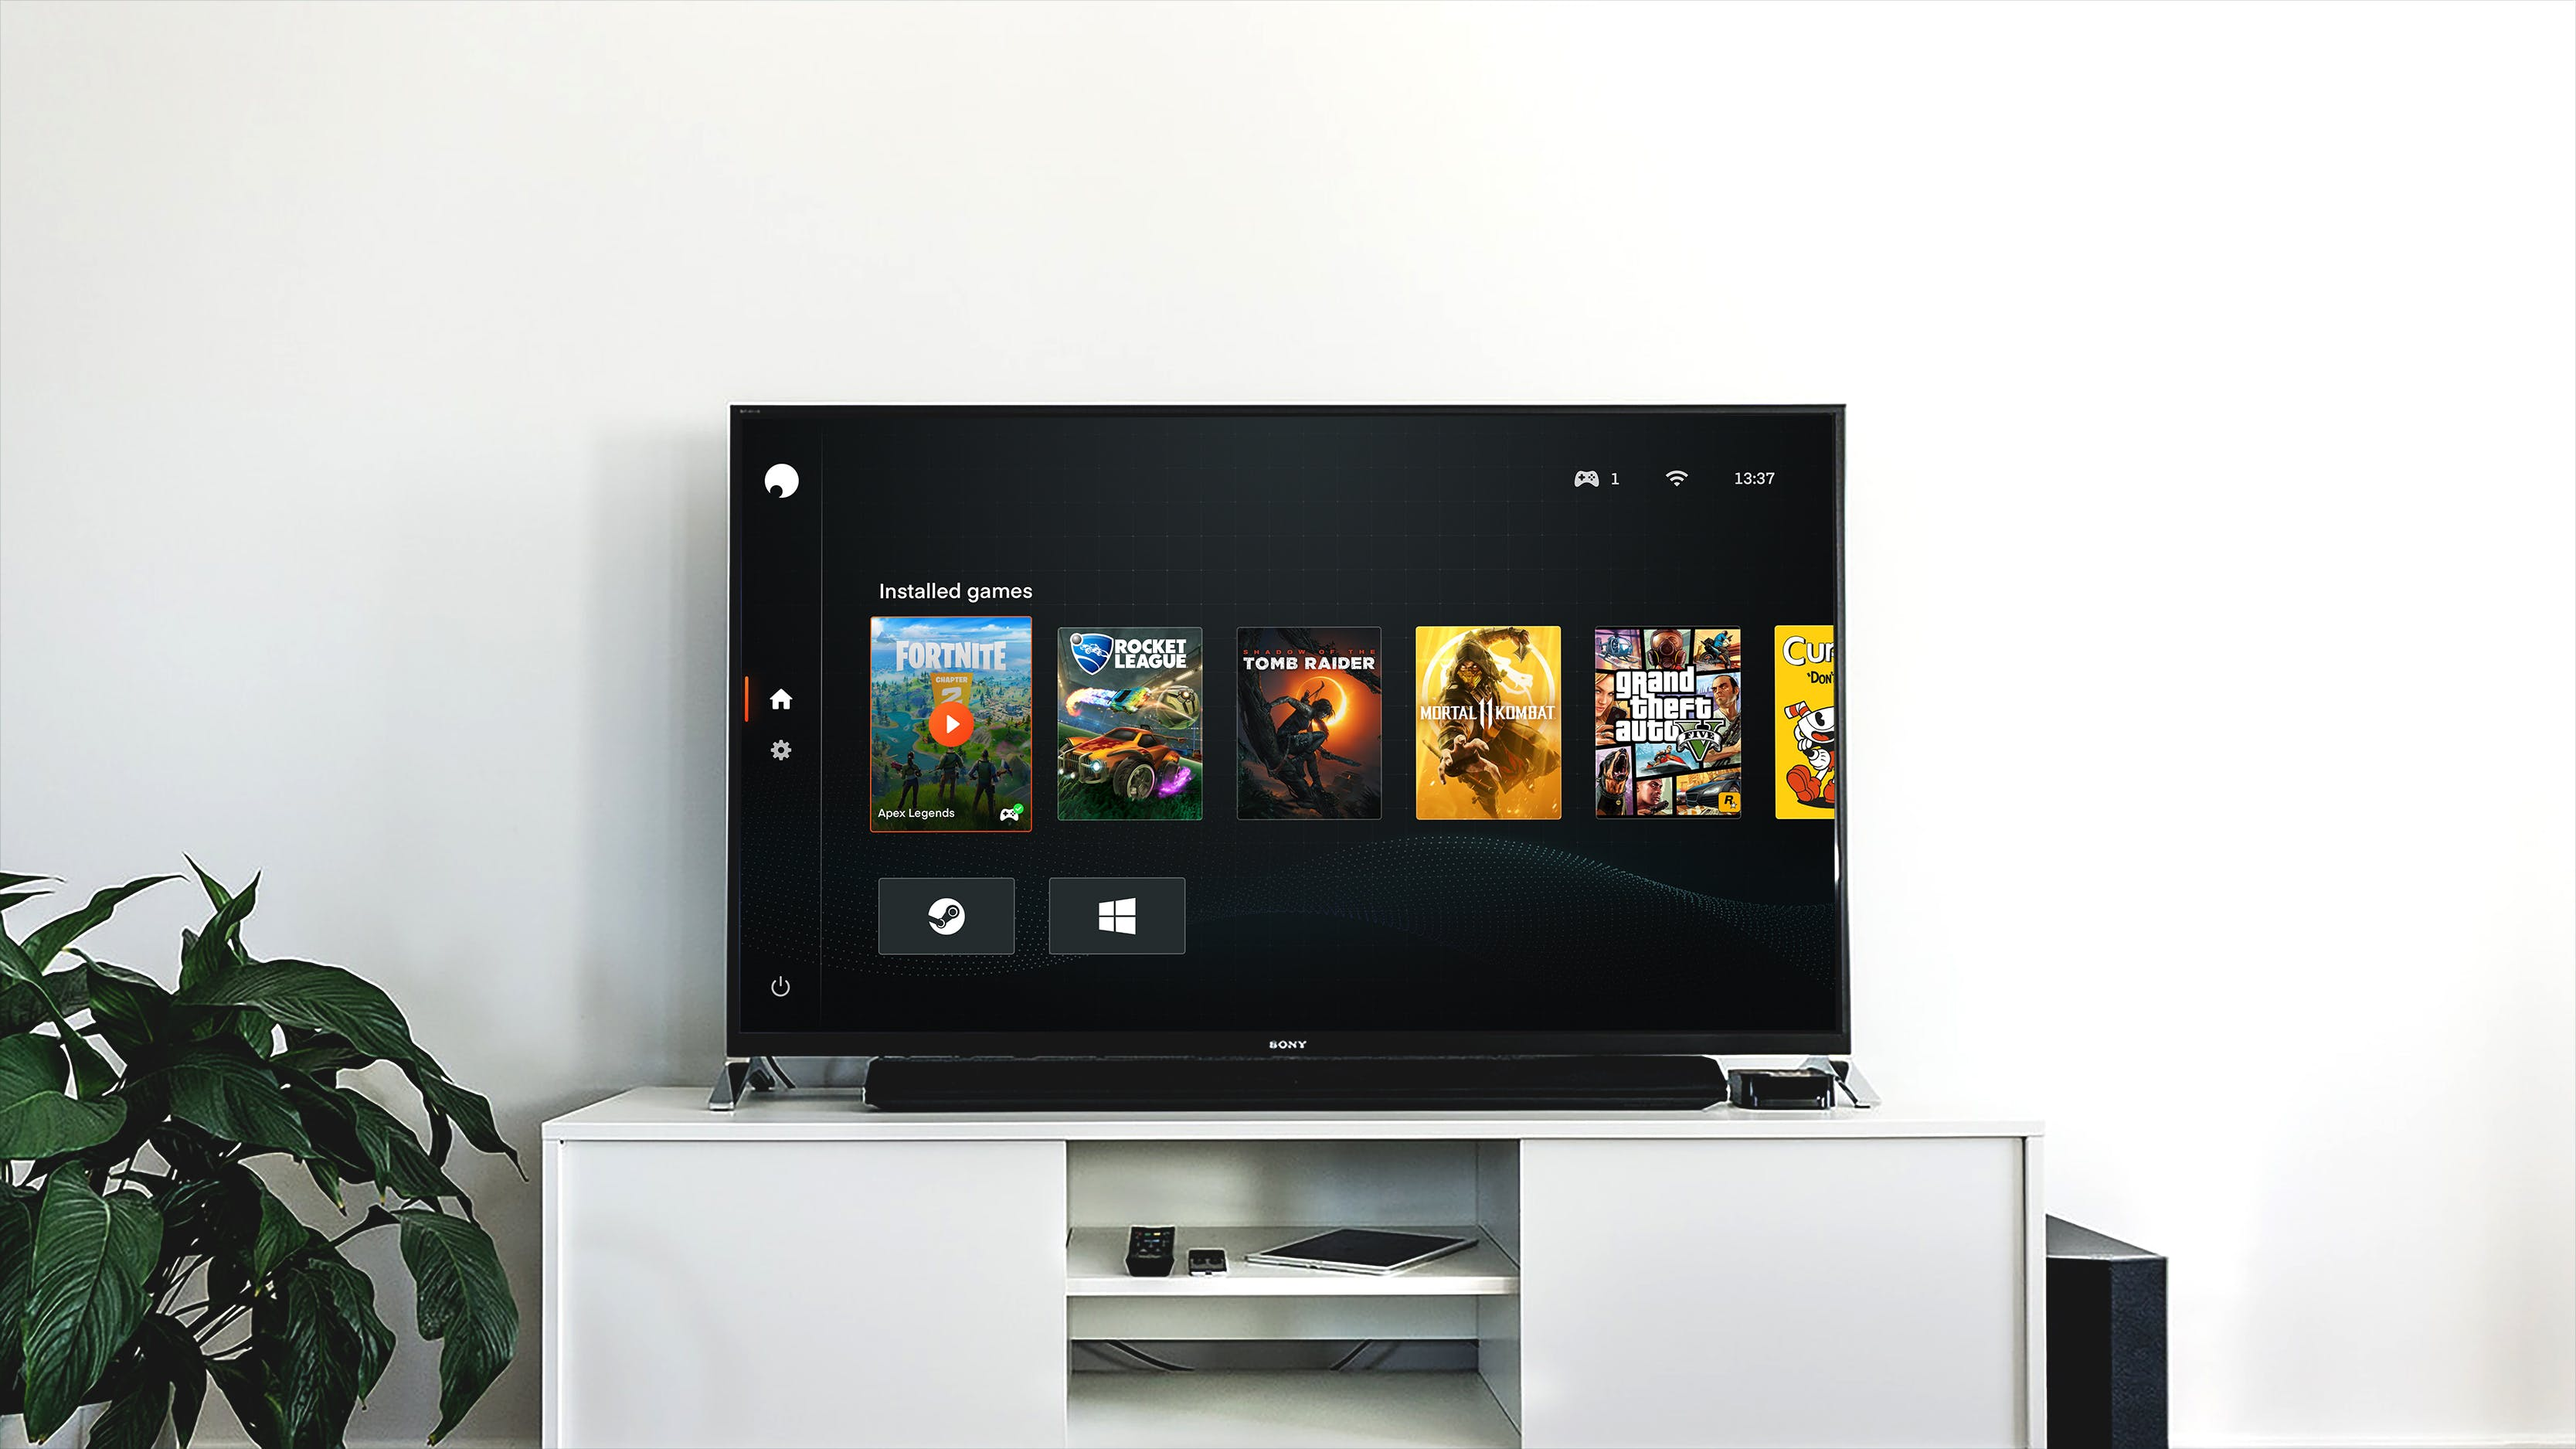 Shadow TV app pour Android TV et Apple TV